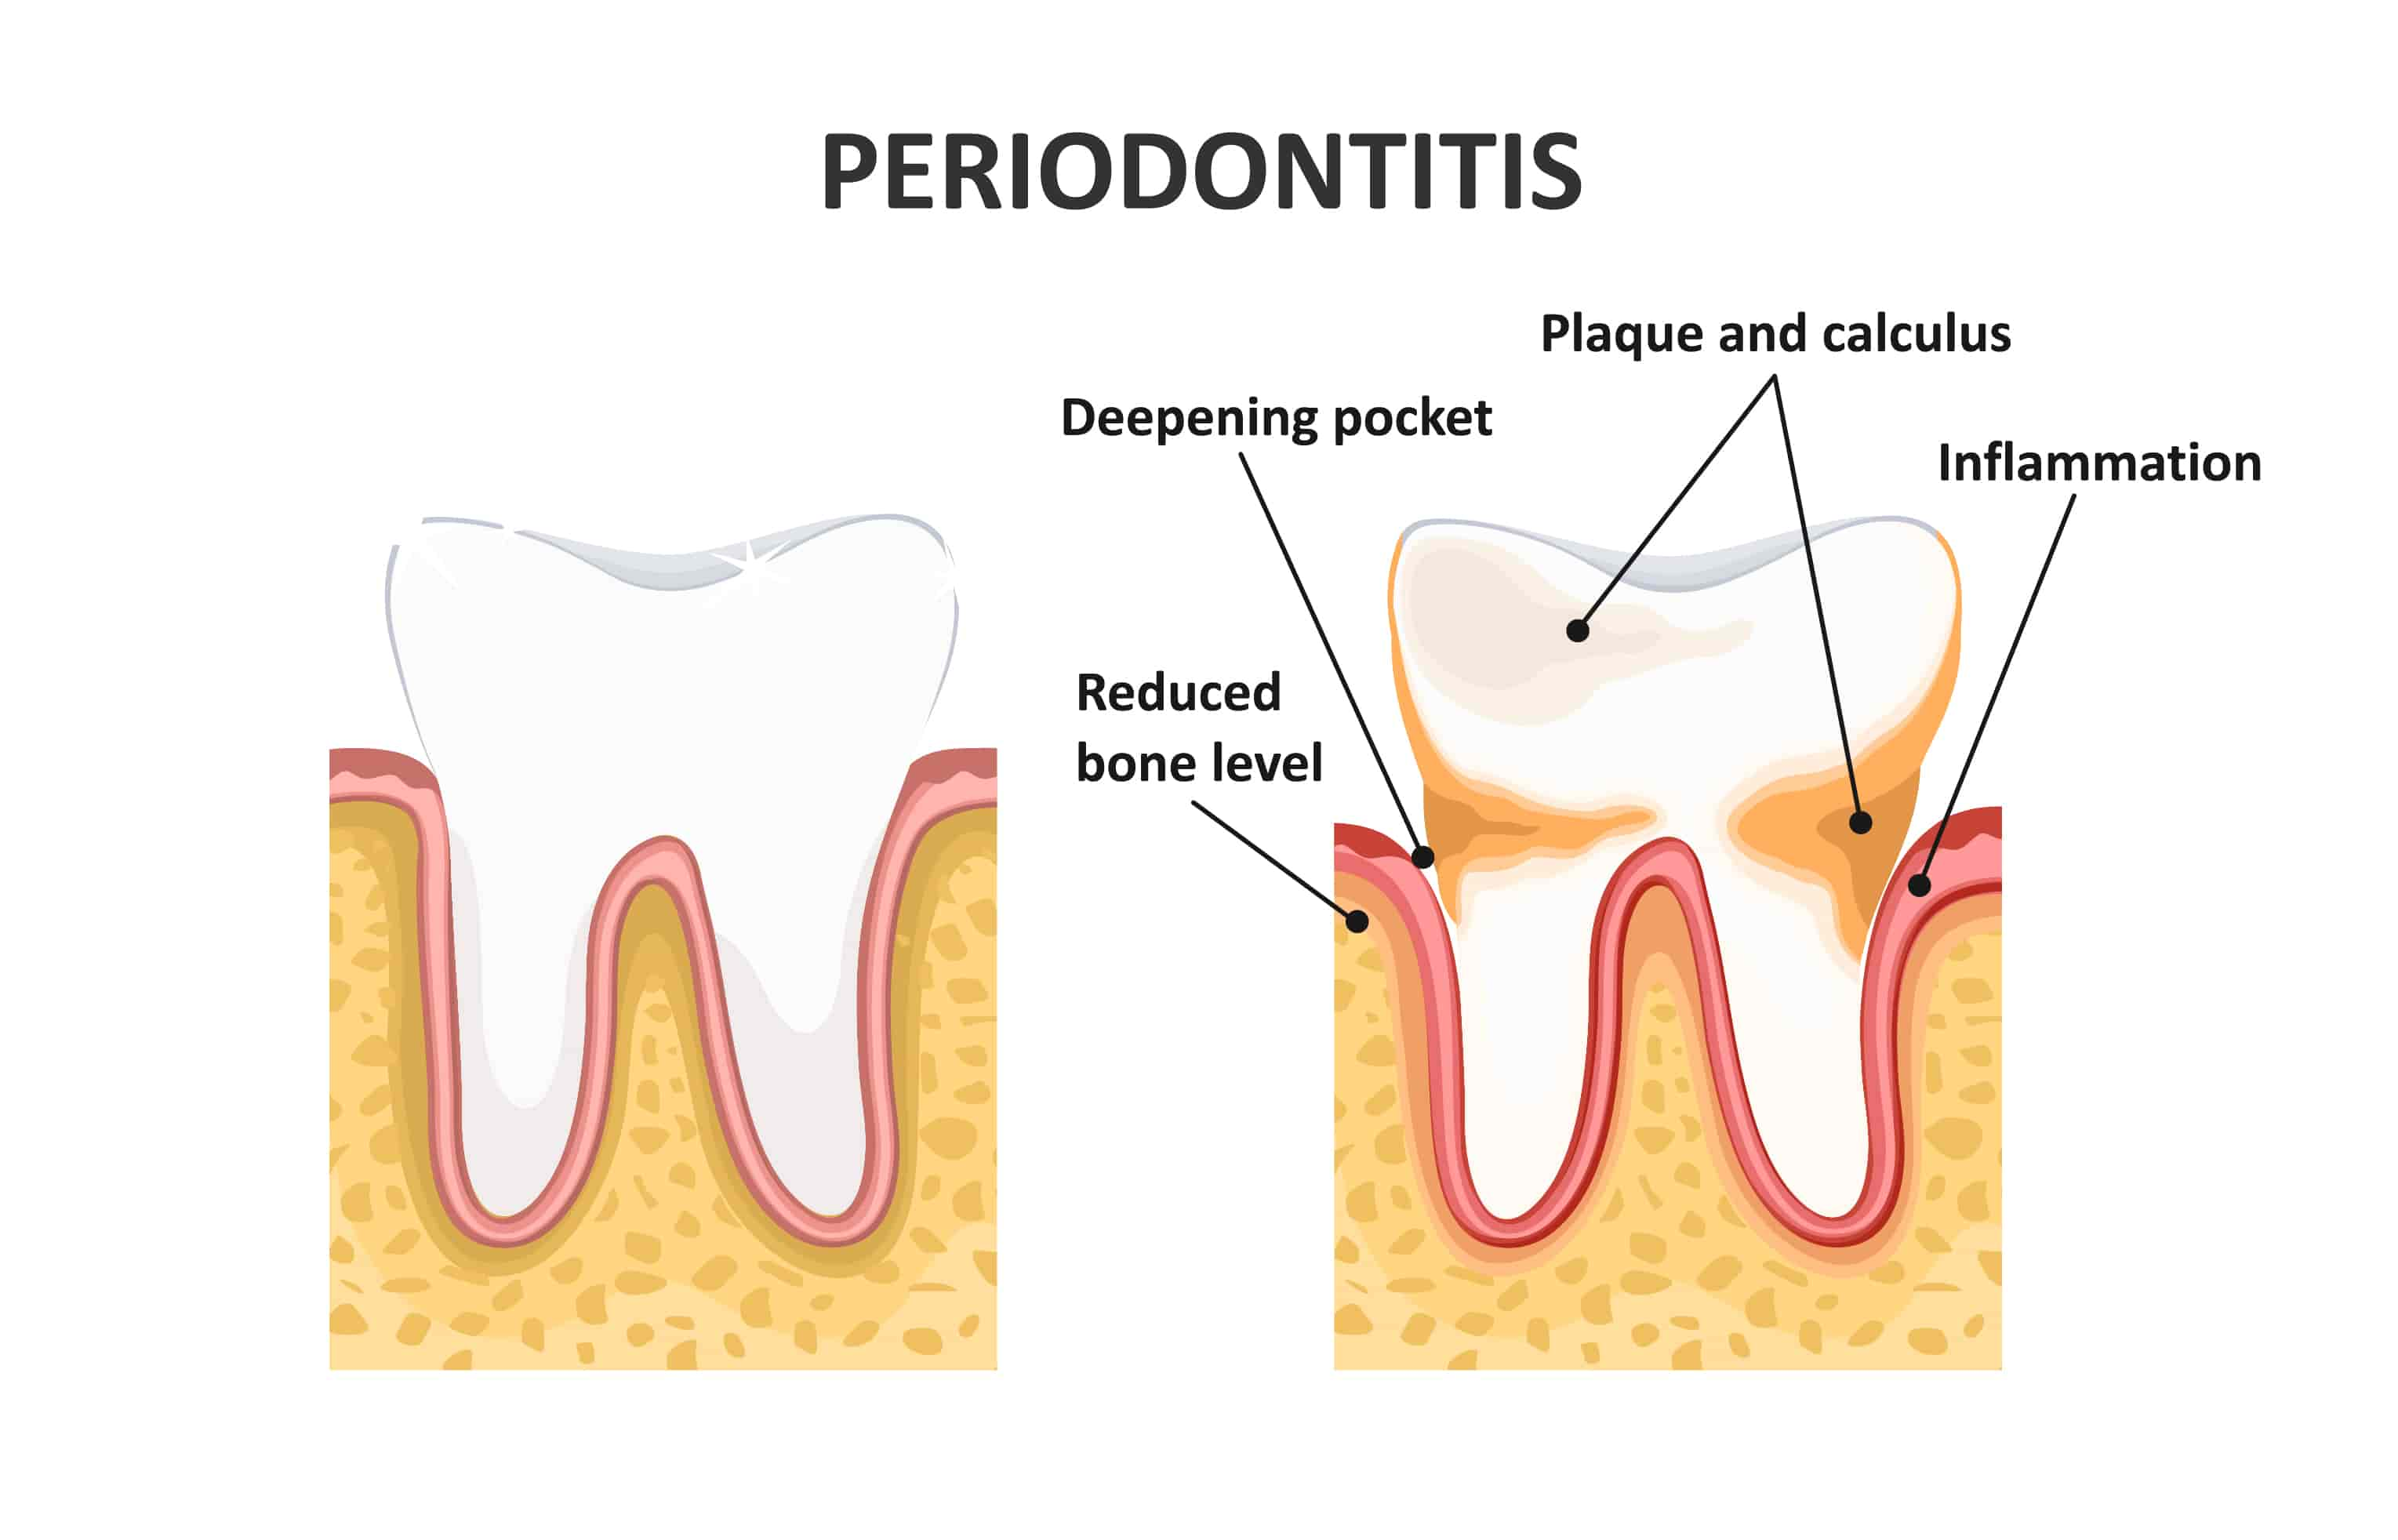 Periodontitis Chatting, Perio Treatment Chat, Local Periodontist Blog, Online Periodontitis Discussion: